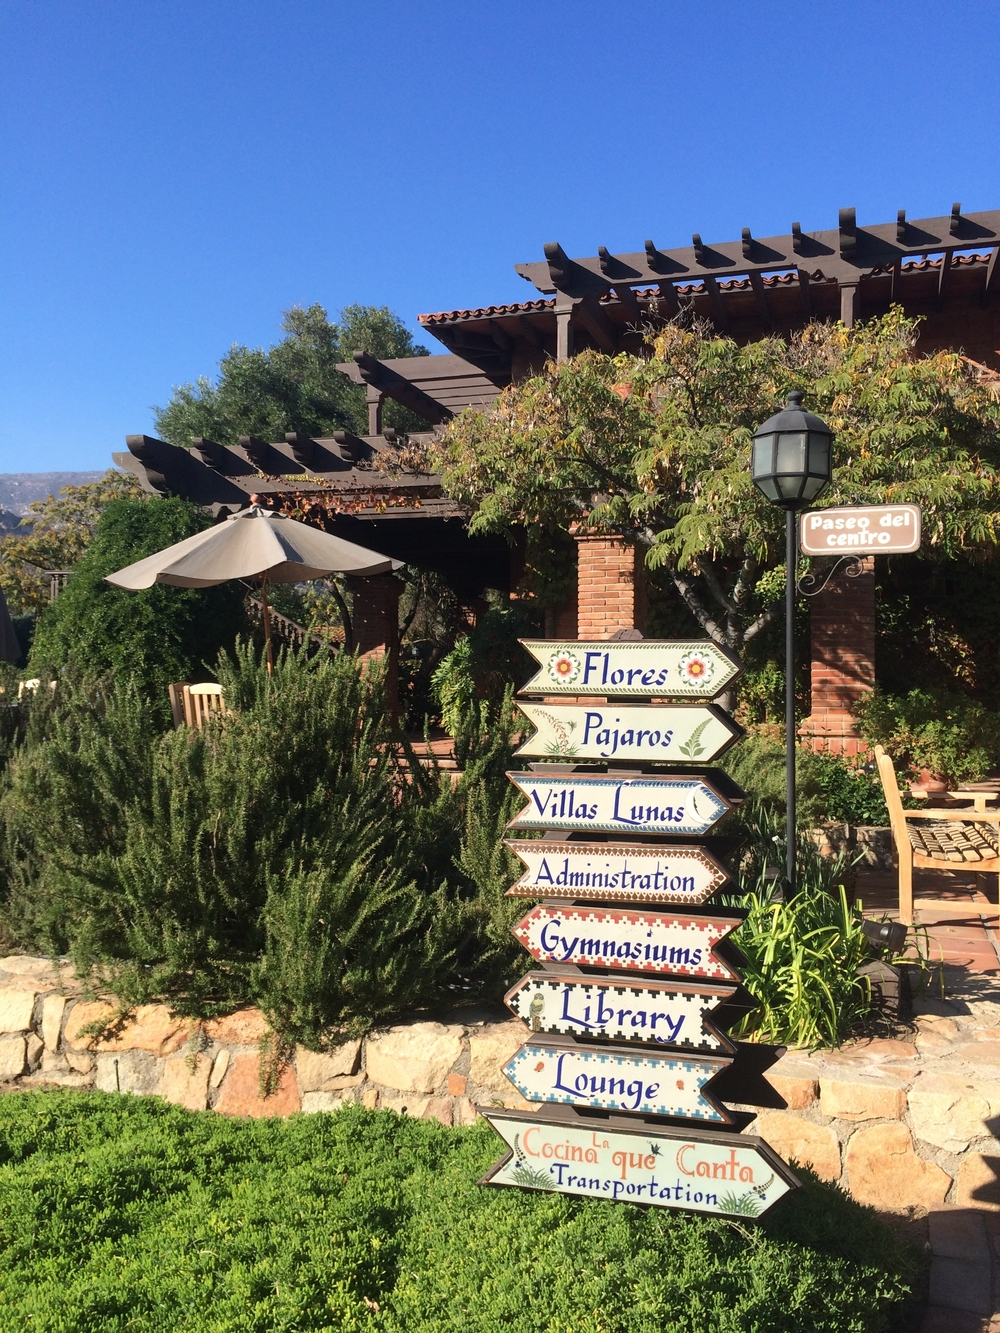 Welcoming signs at Rancho la Puerta